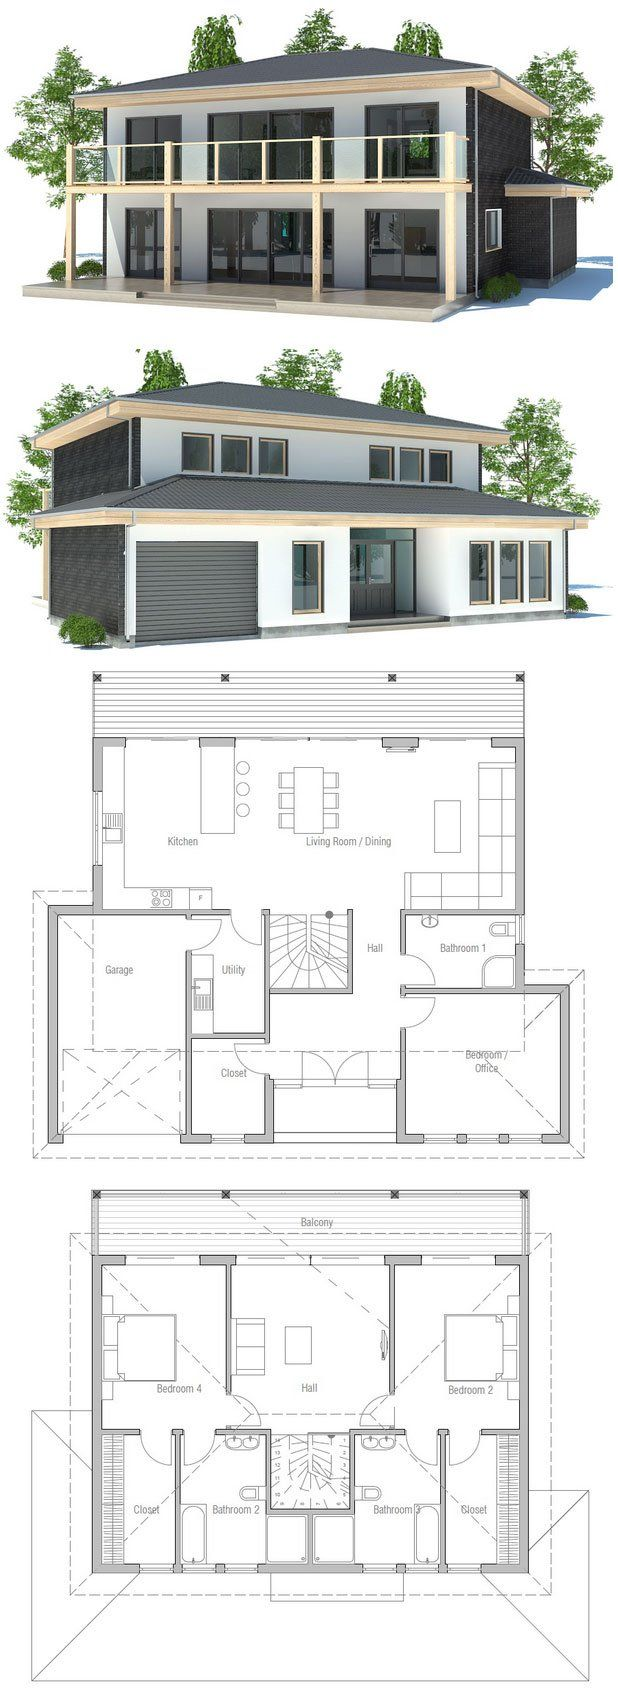 17 best plans images on pinterest architecture modern houses small simple house plan in modern architecture floor plan from concepthome com